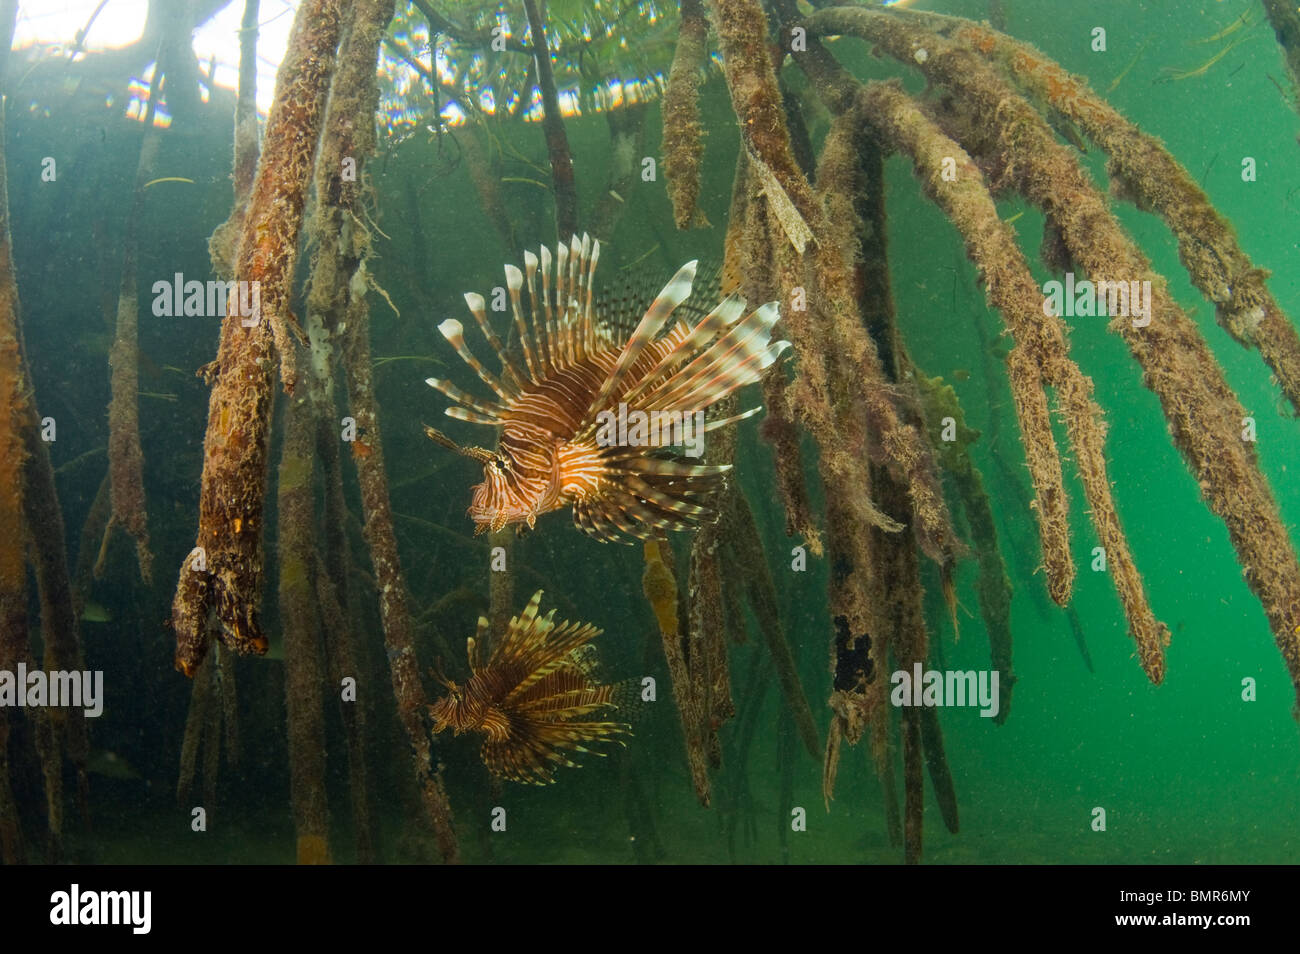 the lionfish an invasive species A key factor that makes many species invasive is a lack of predators in the  lionfish are thought to have been  the spread of invasive species and infectious .